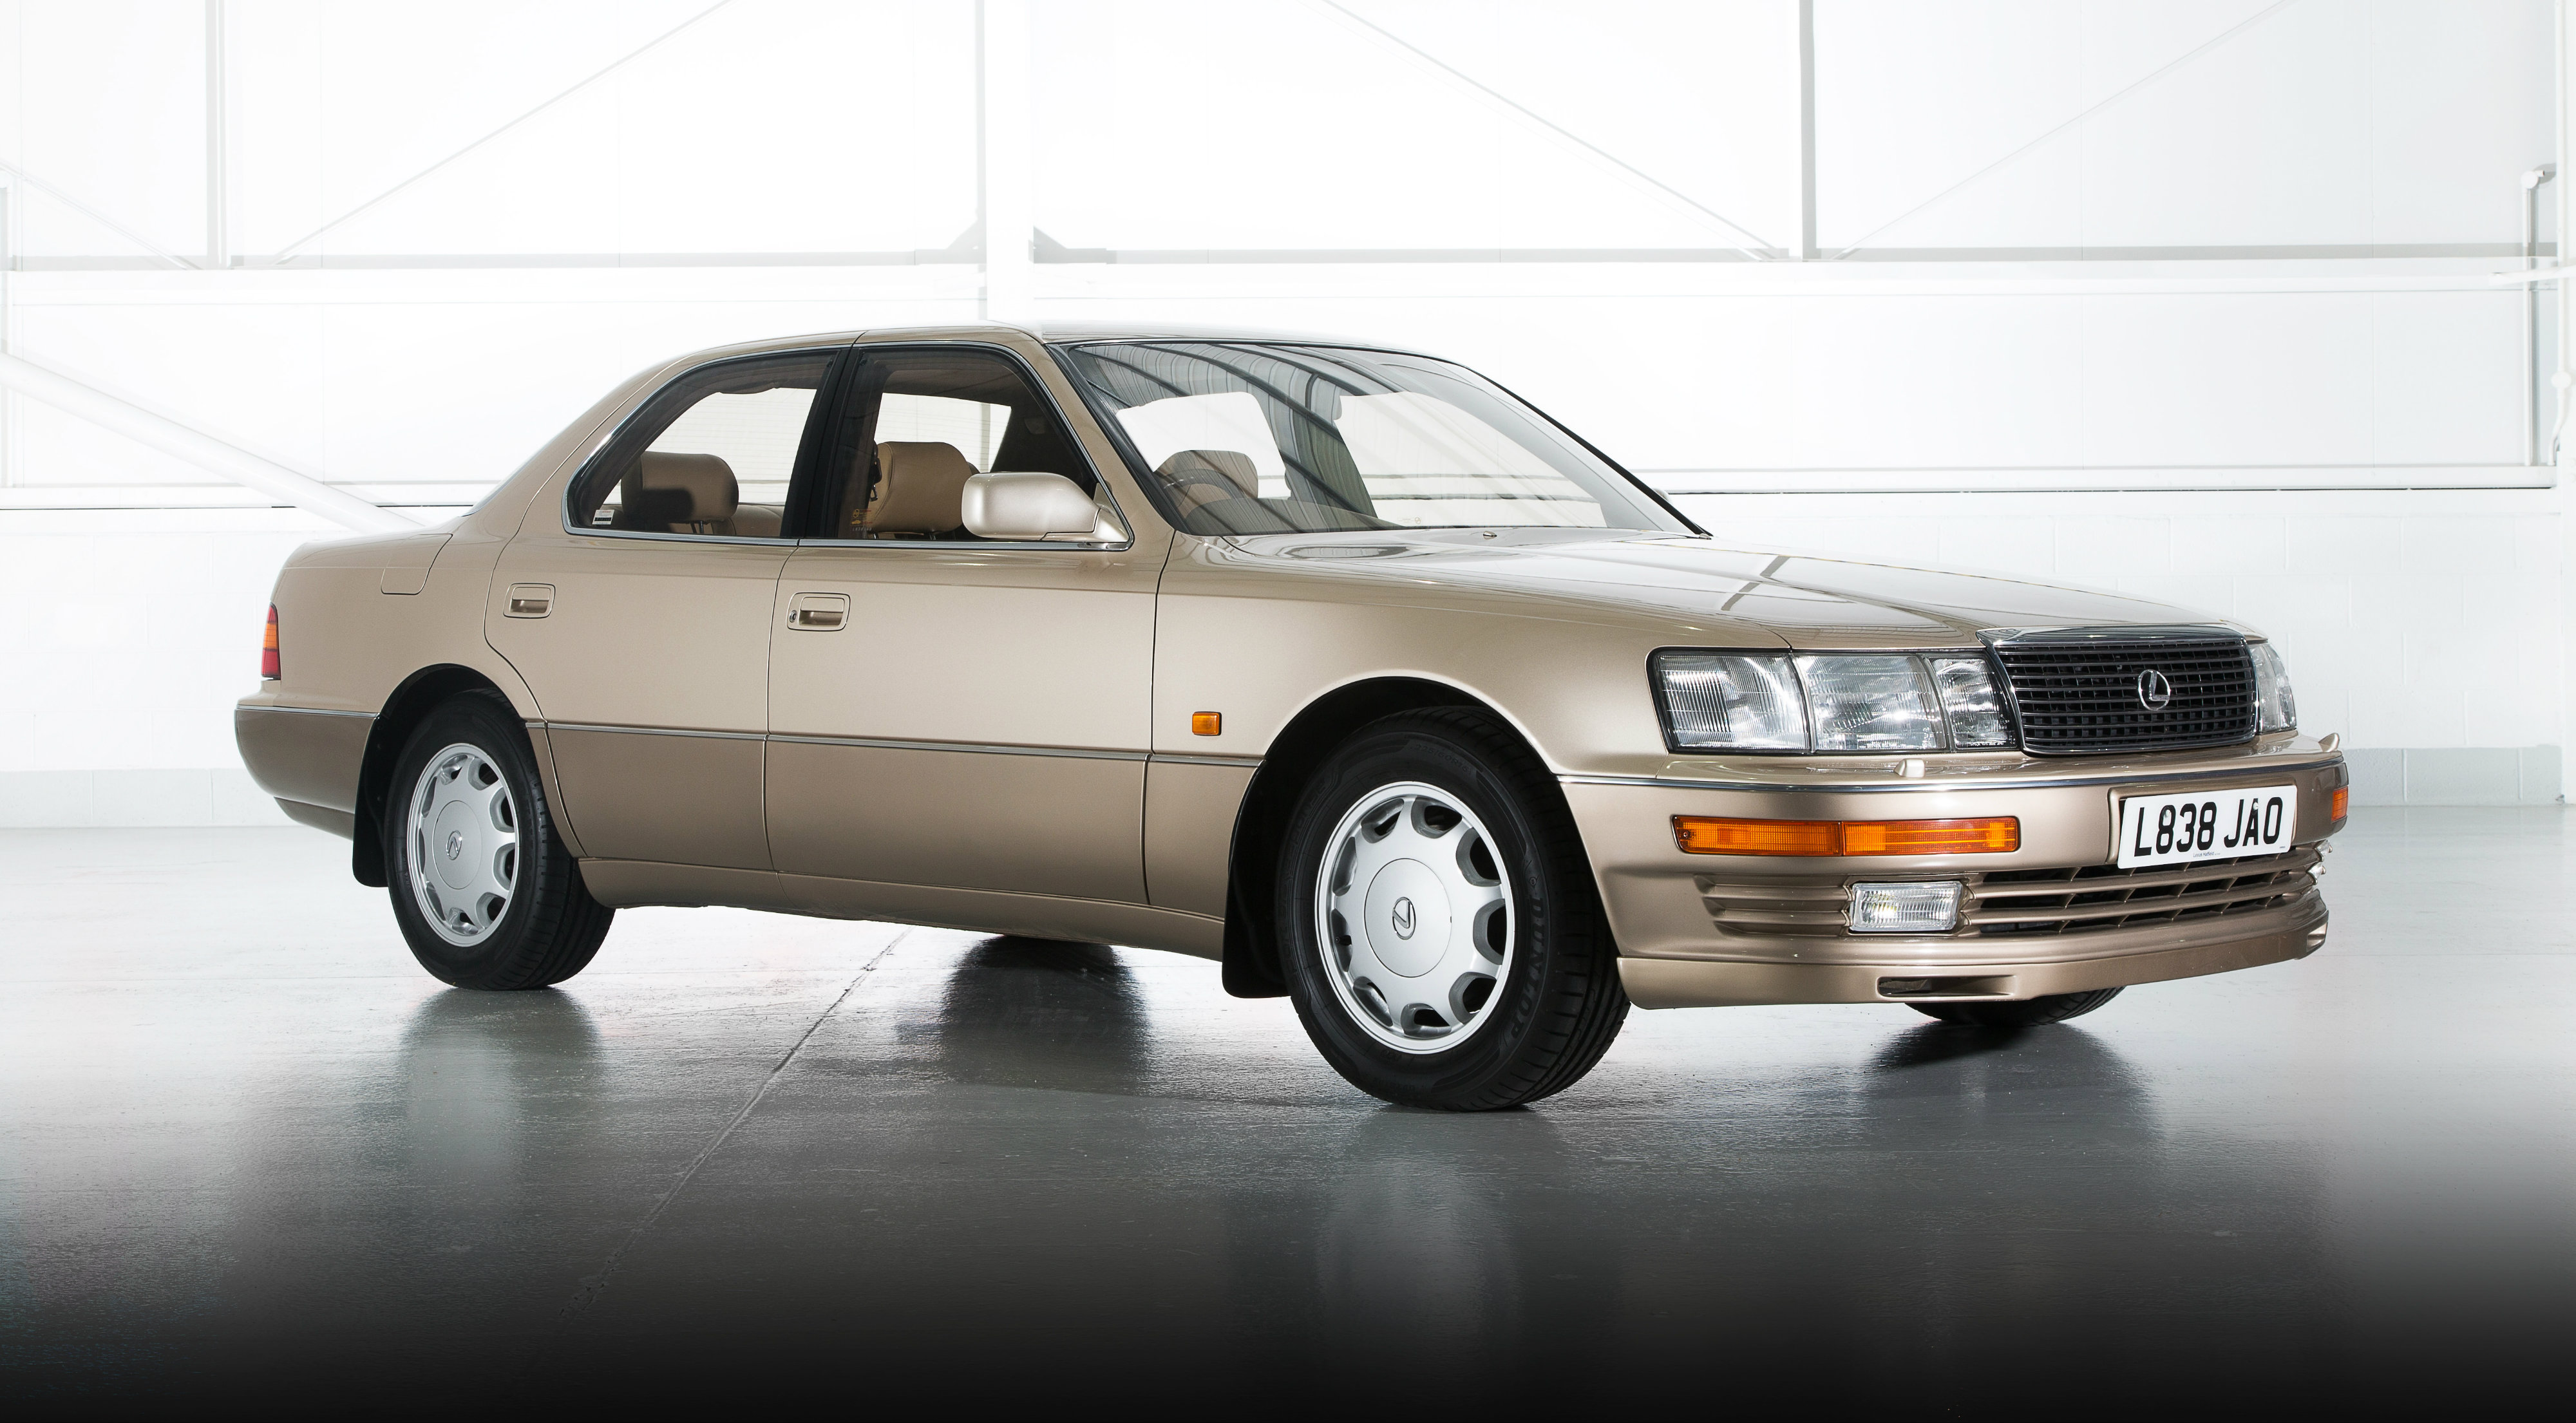 ls400 limousine was the first lexus introduced in 1989 torque. Black Bedroom Furniture Sets. Home Design Ideas